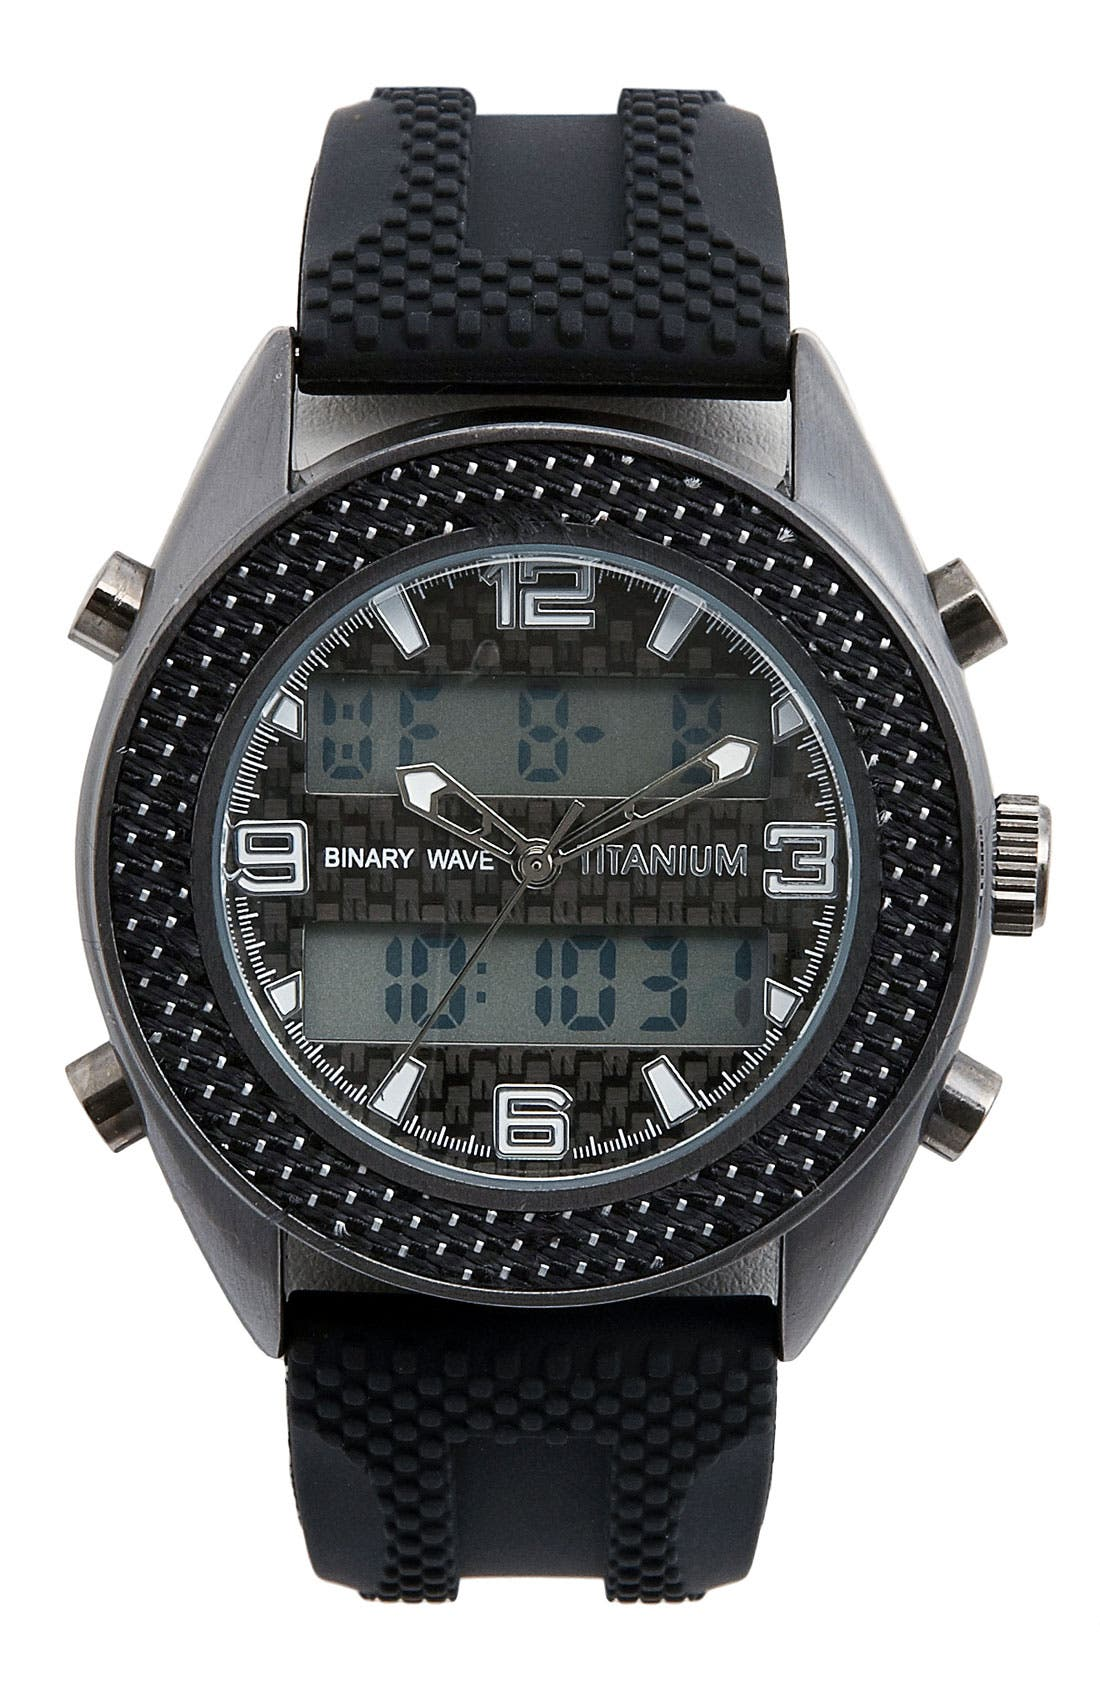 Alternate Image 1 Selected - Titanium 'Binary Wave' Chronograph Silicone Strap Watch